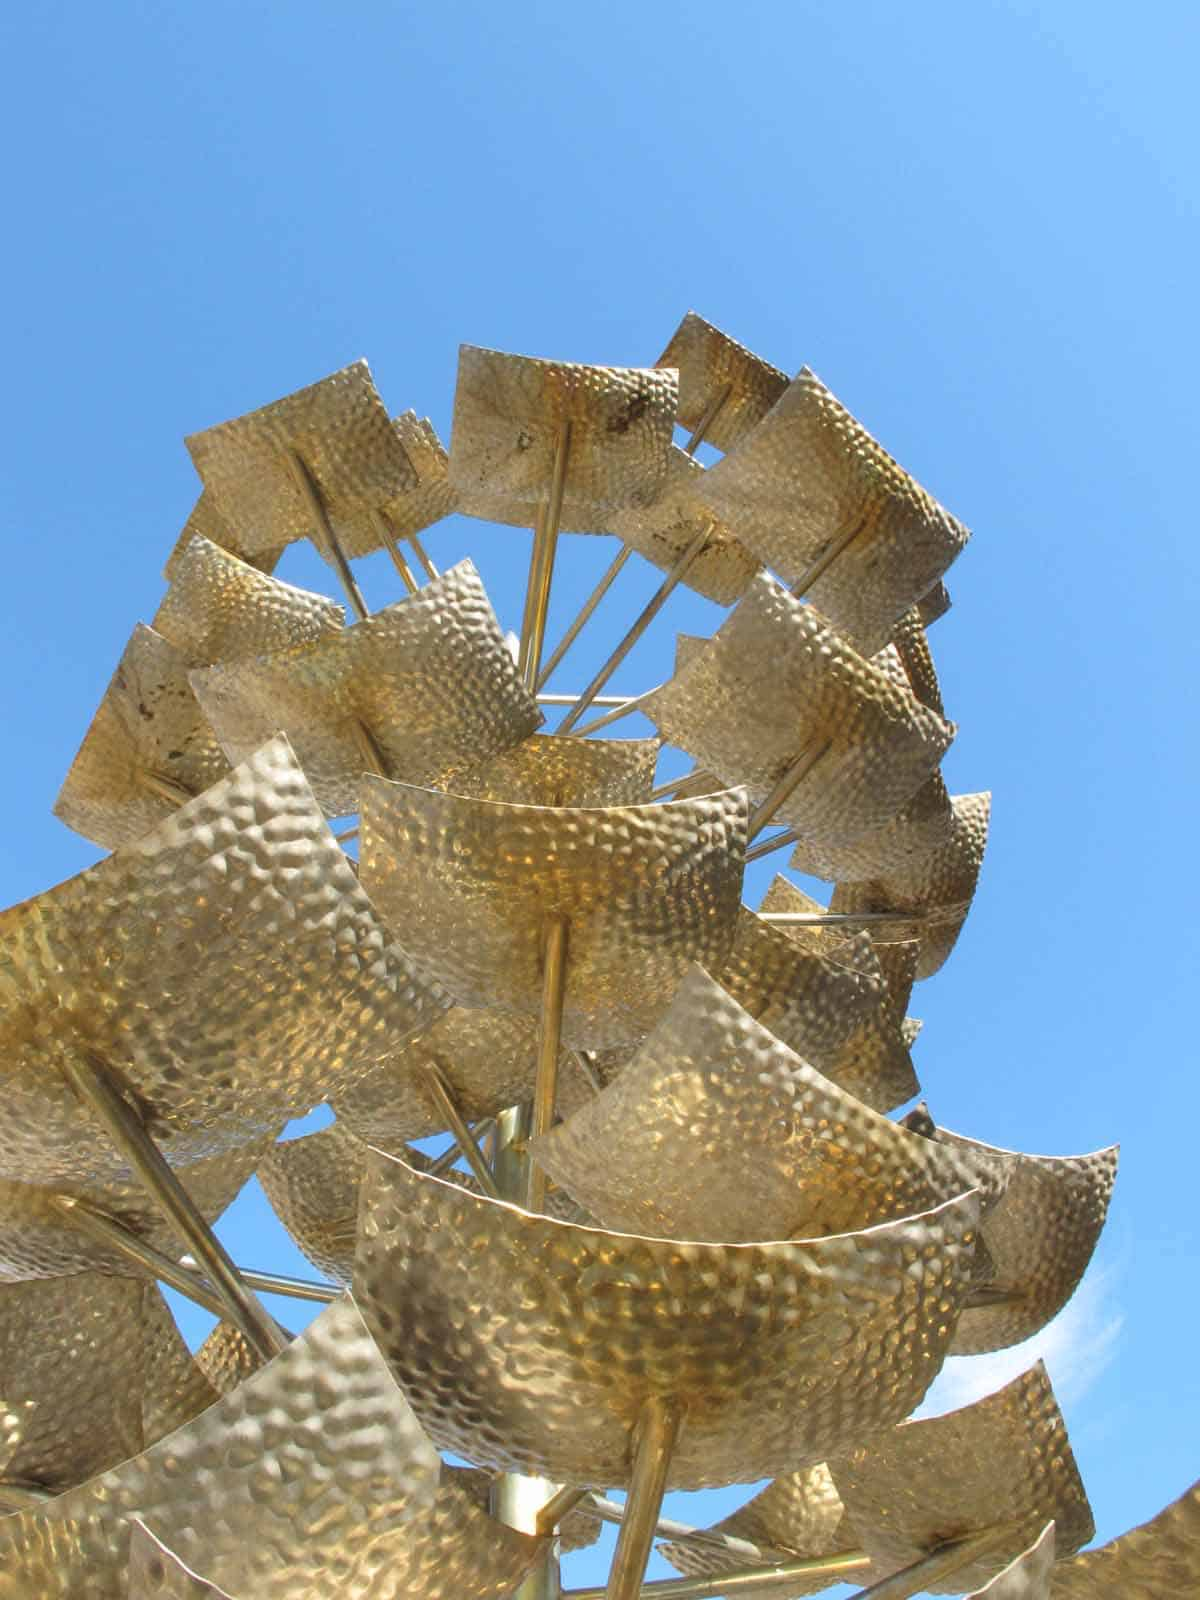 Detail of Tree sculpture from below